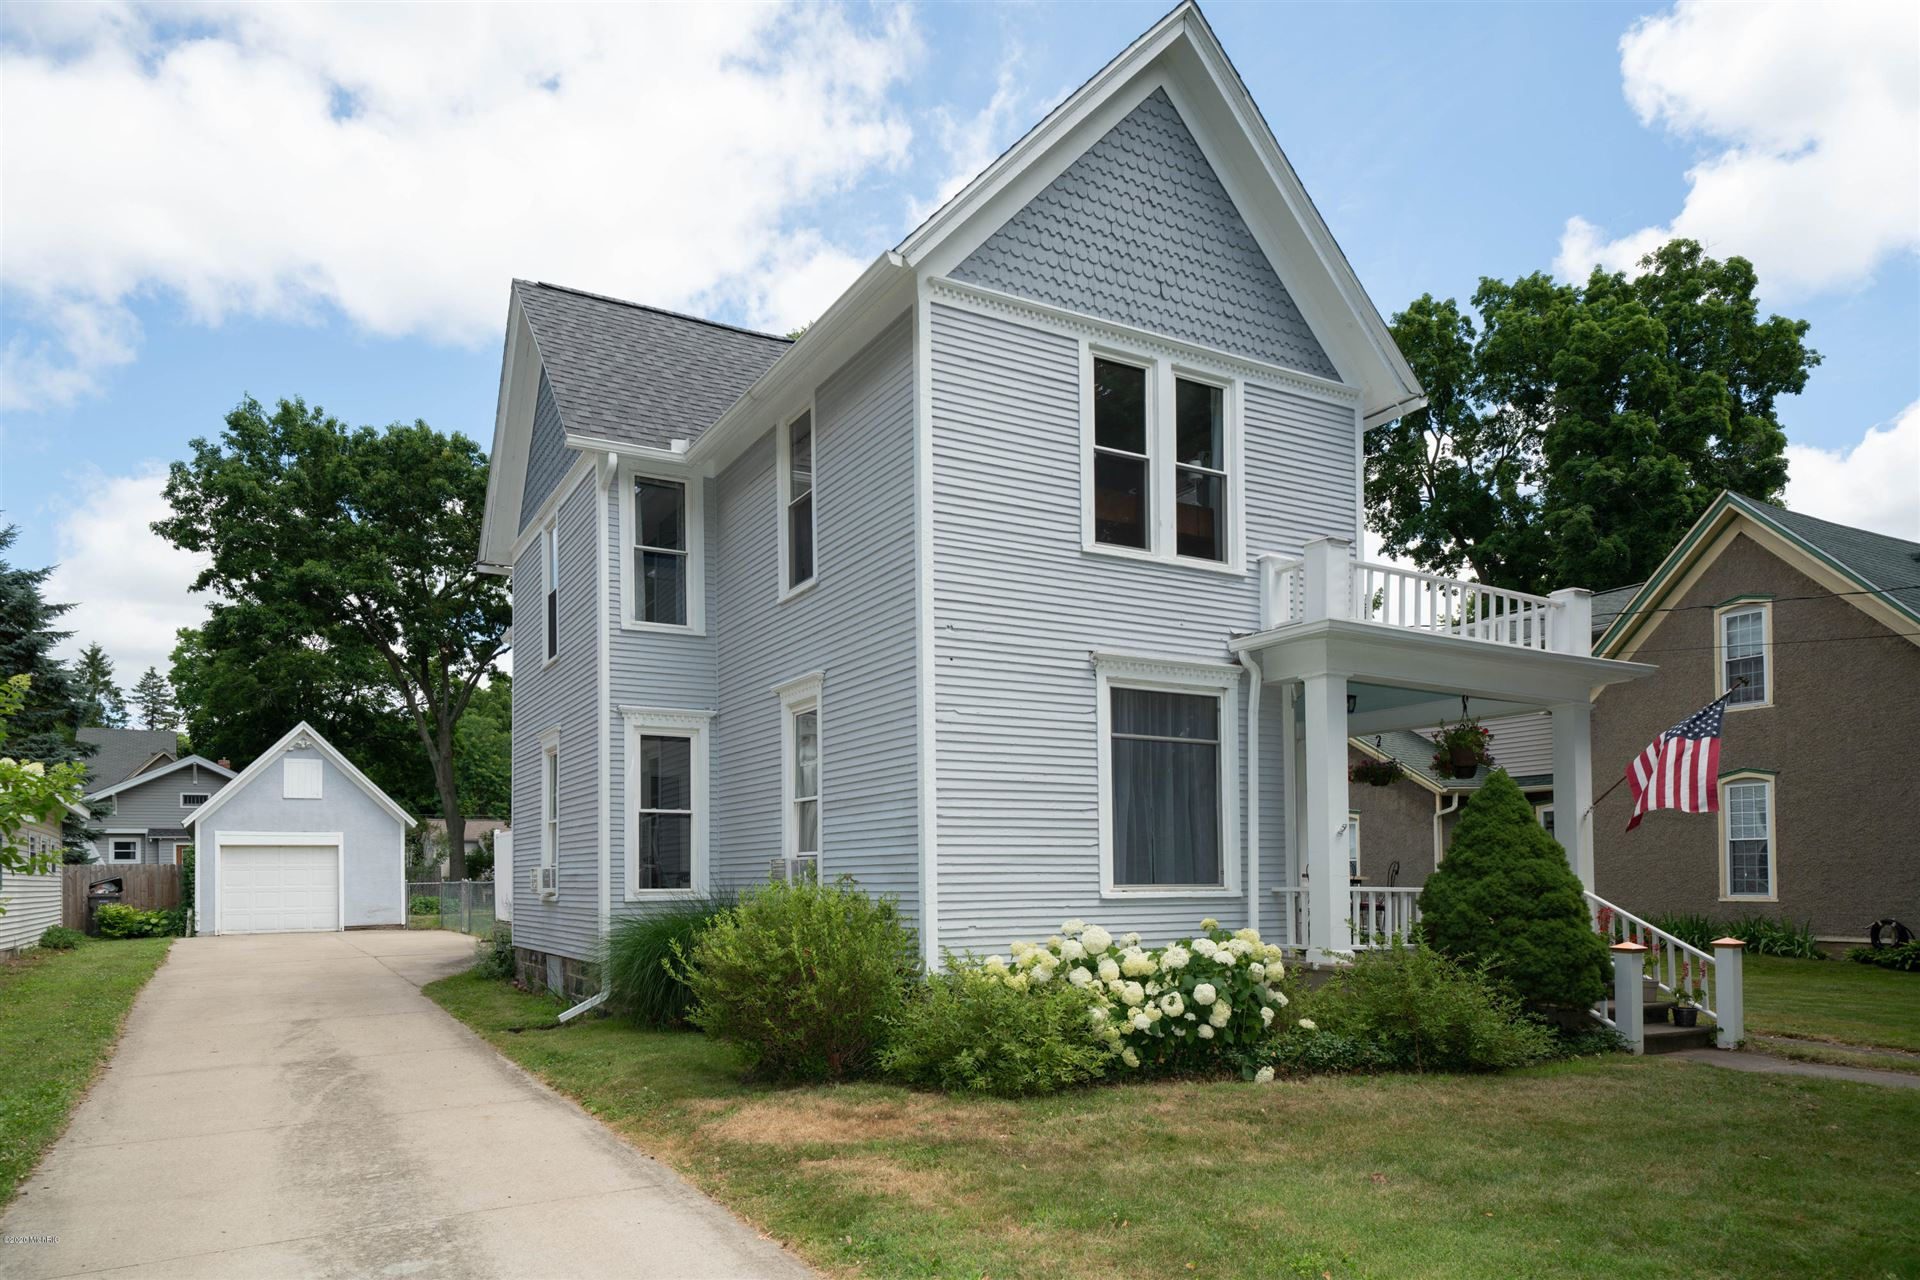 520 W MANSION Street, Marshall, MI 49068 - #: 20027612